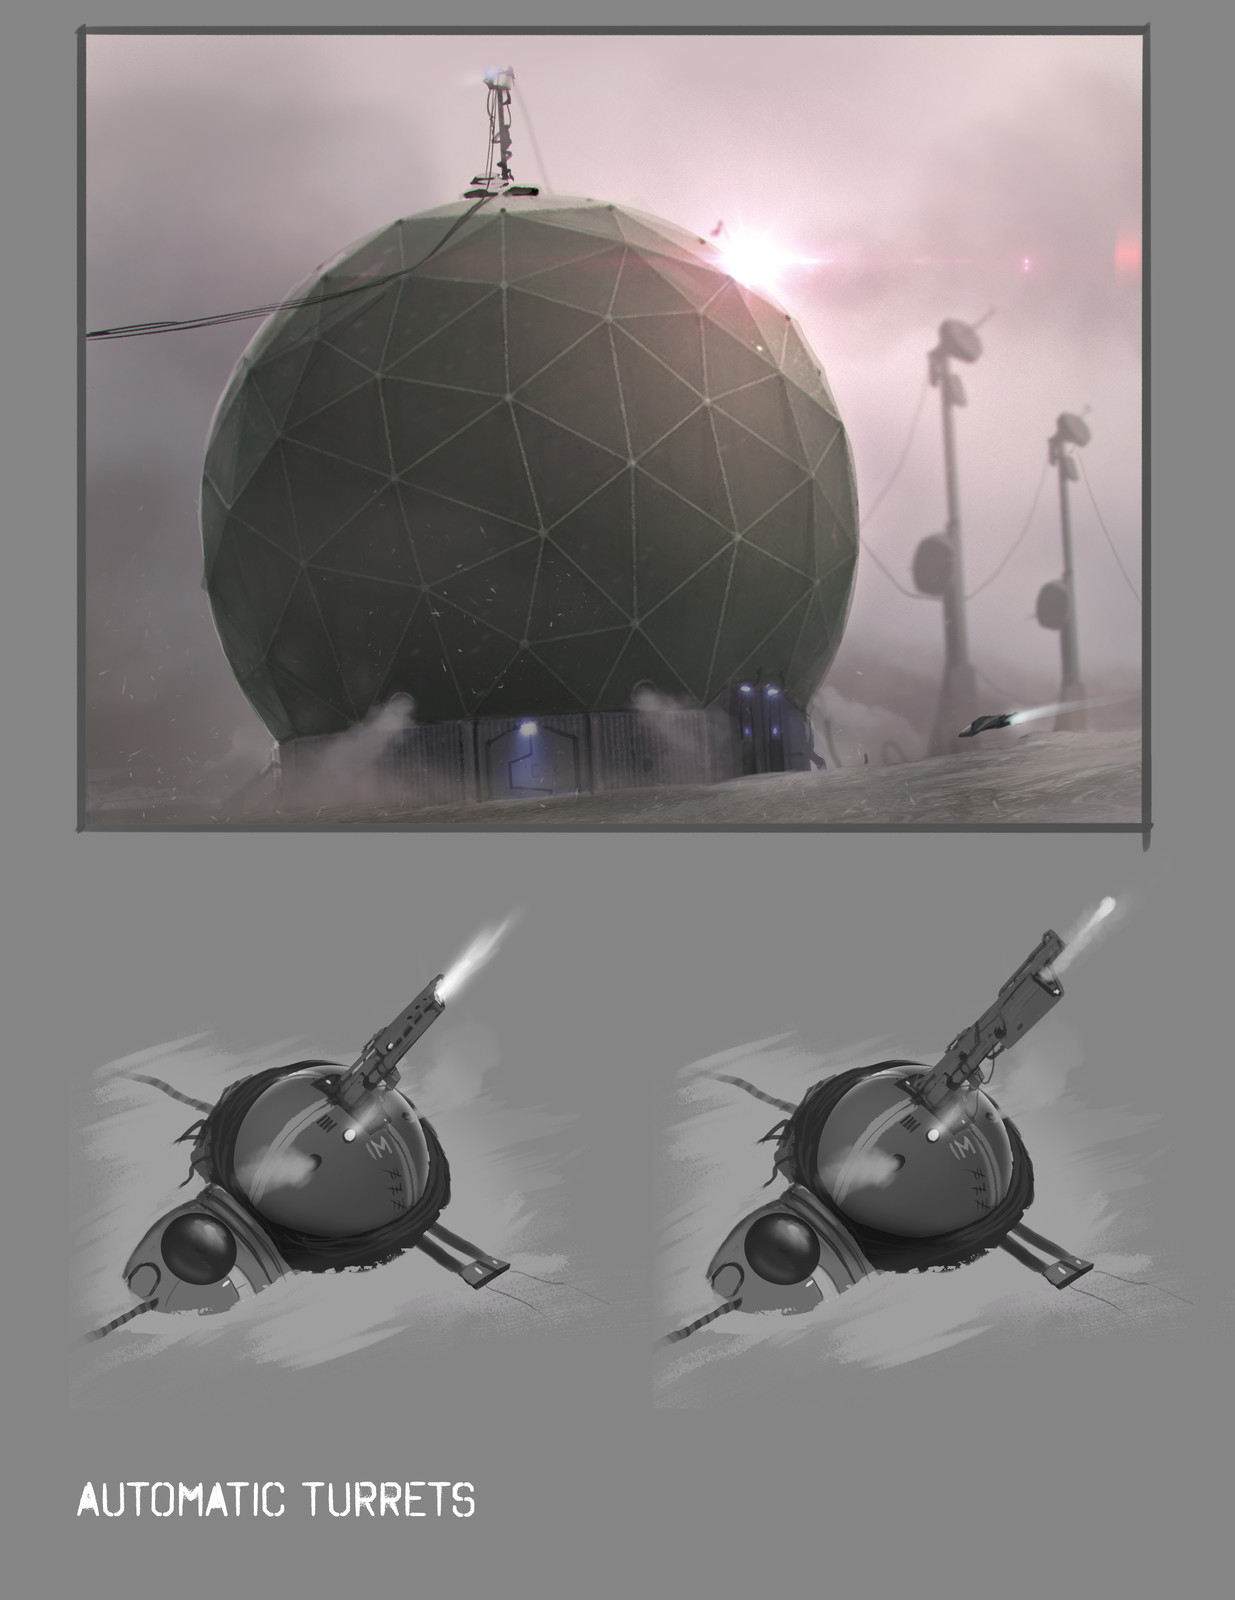 Modular space dome + turrets concepts